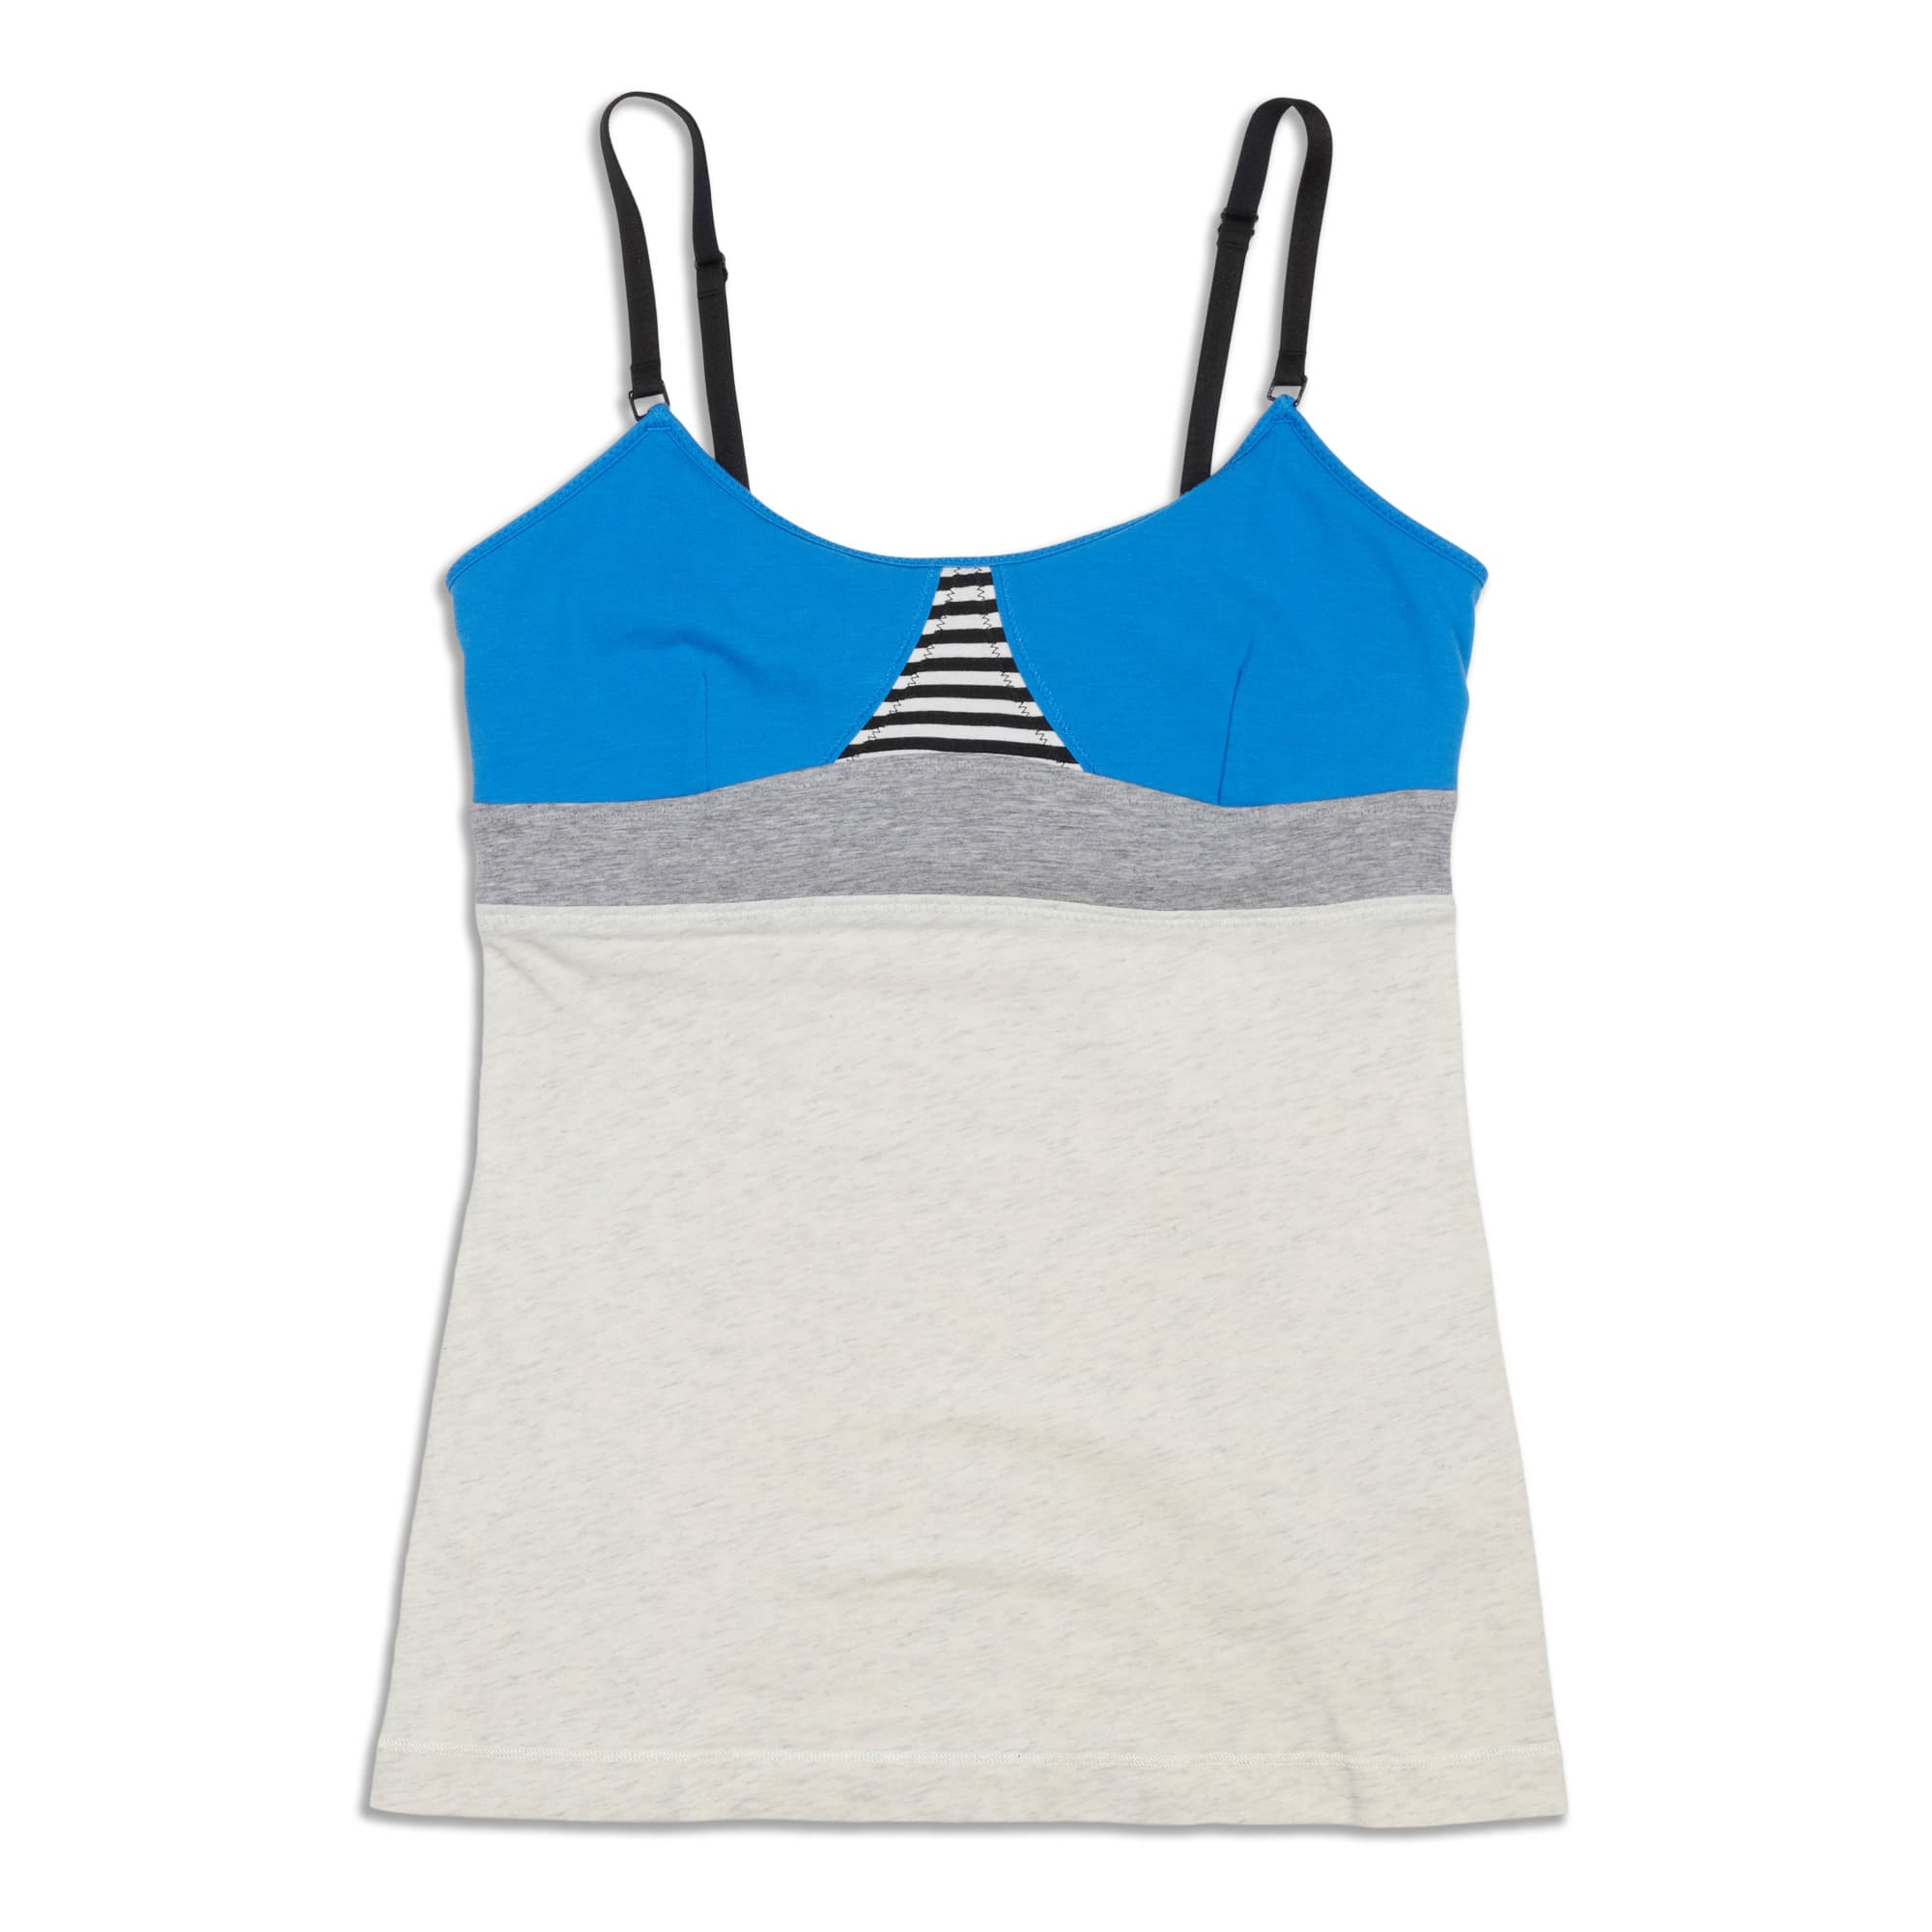 Main product image: Contentment Triangle Tank Top - Resale